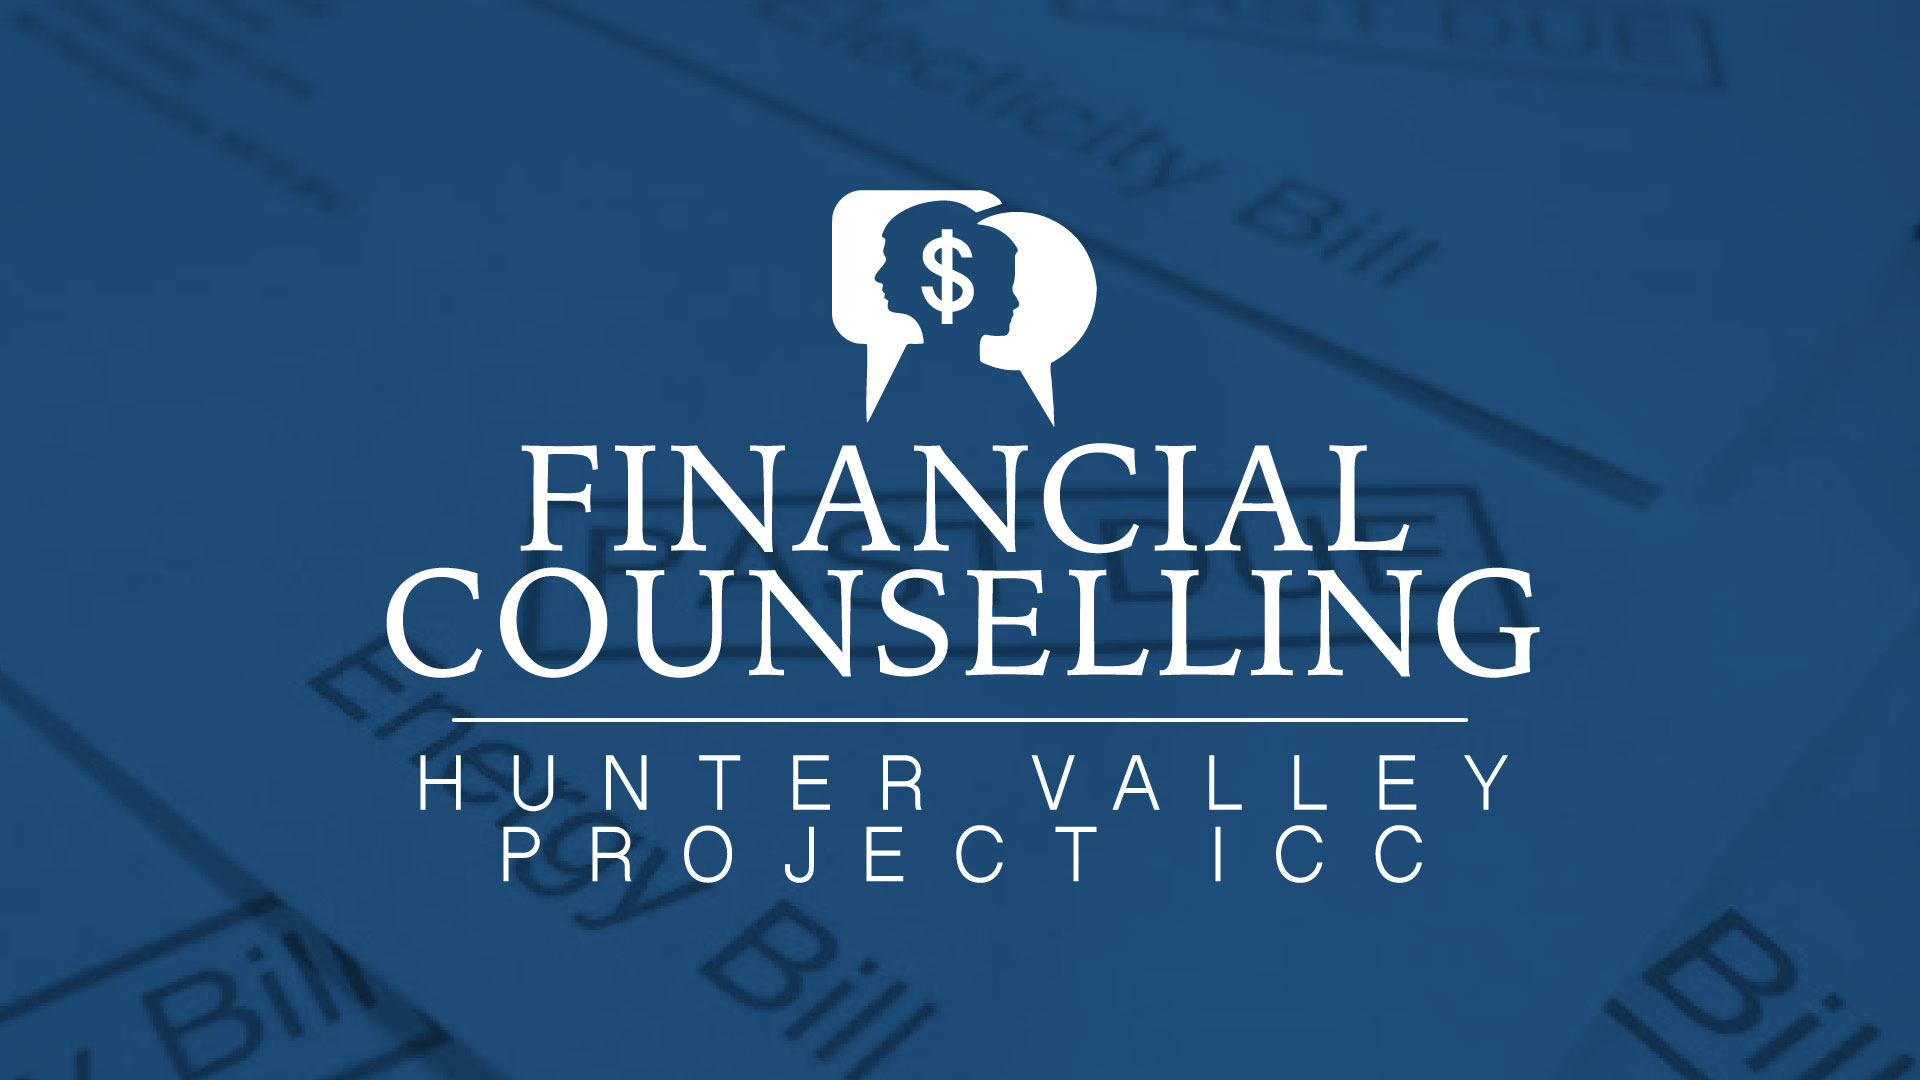 Financial Counselling Hunter Valley Project Inc